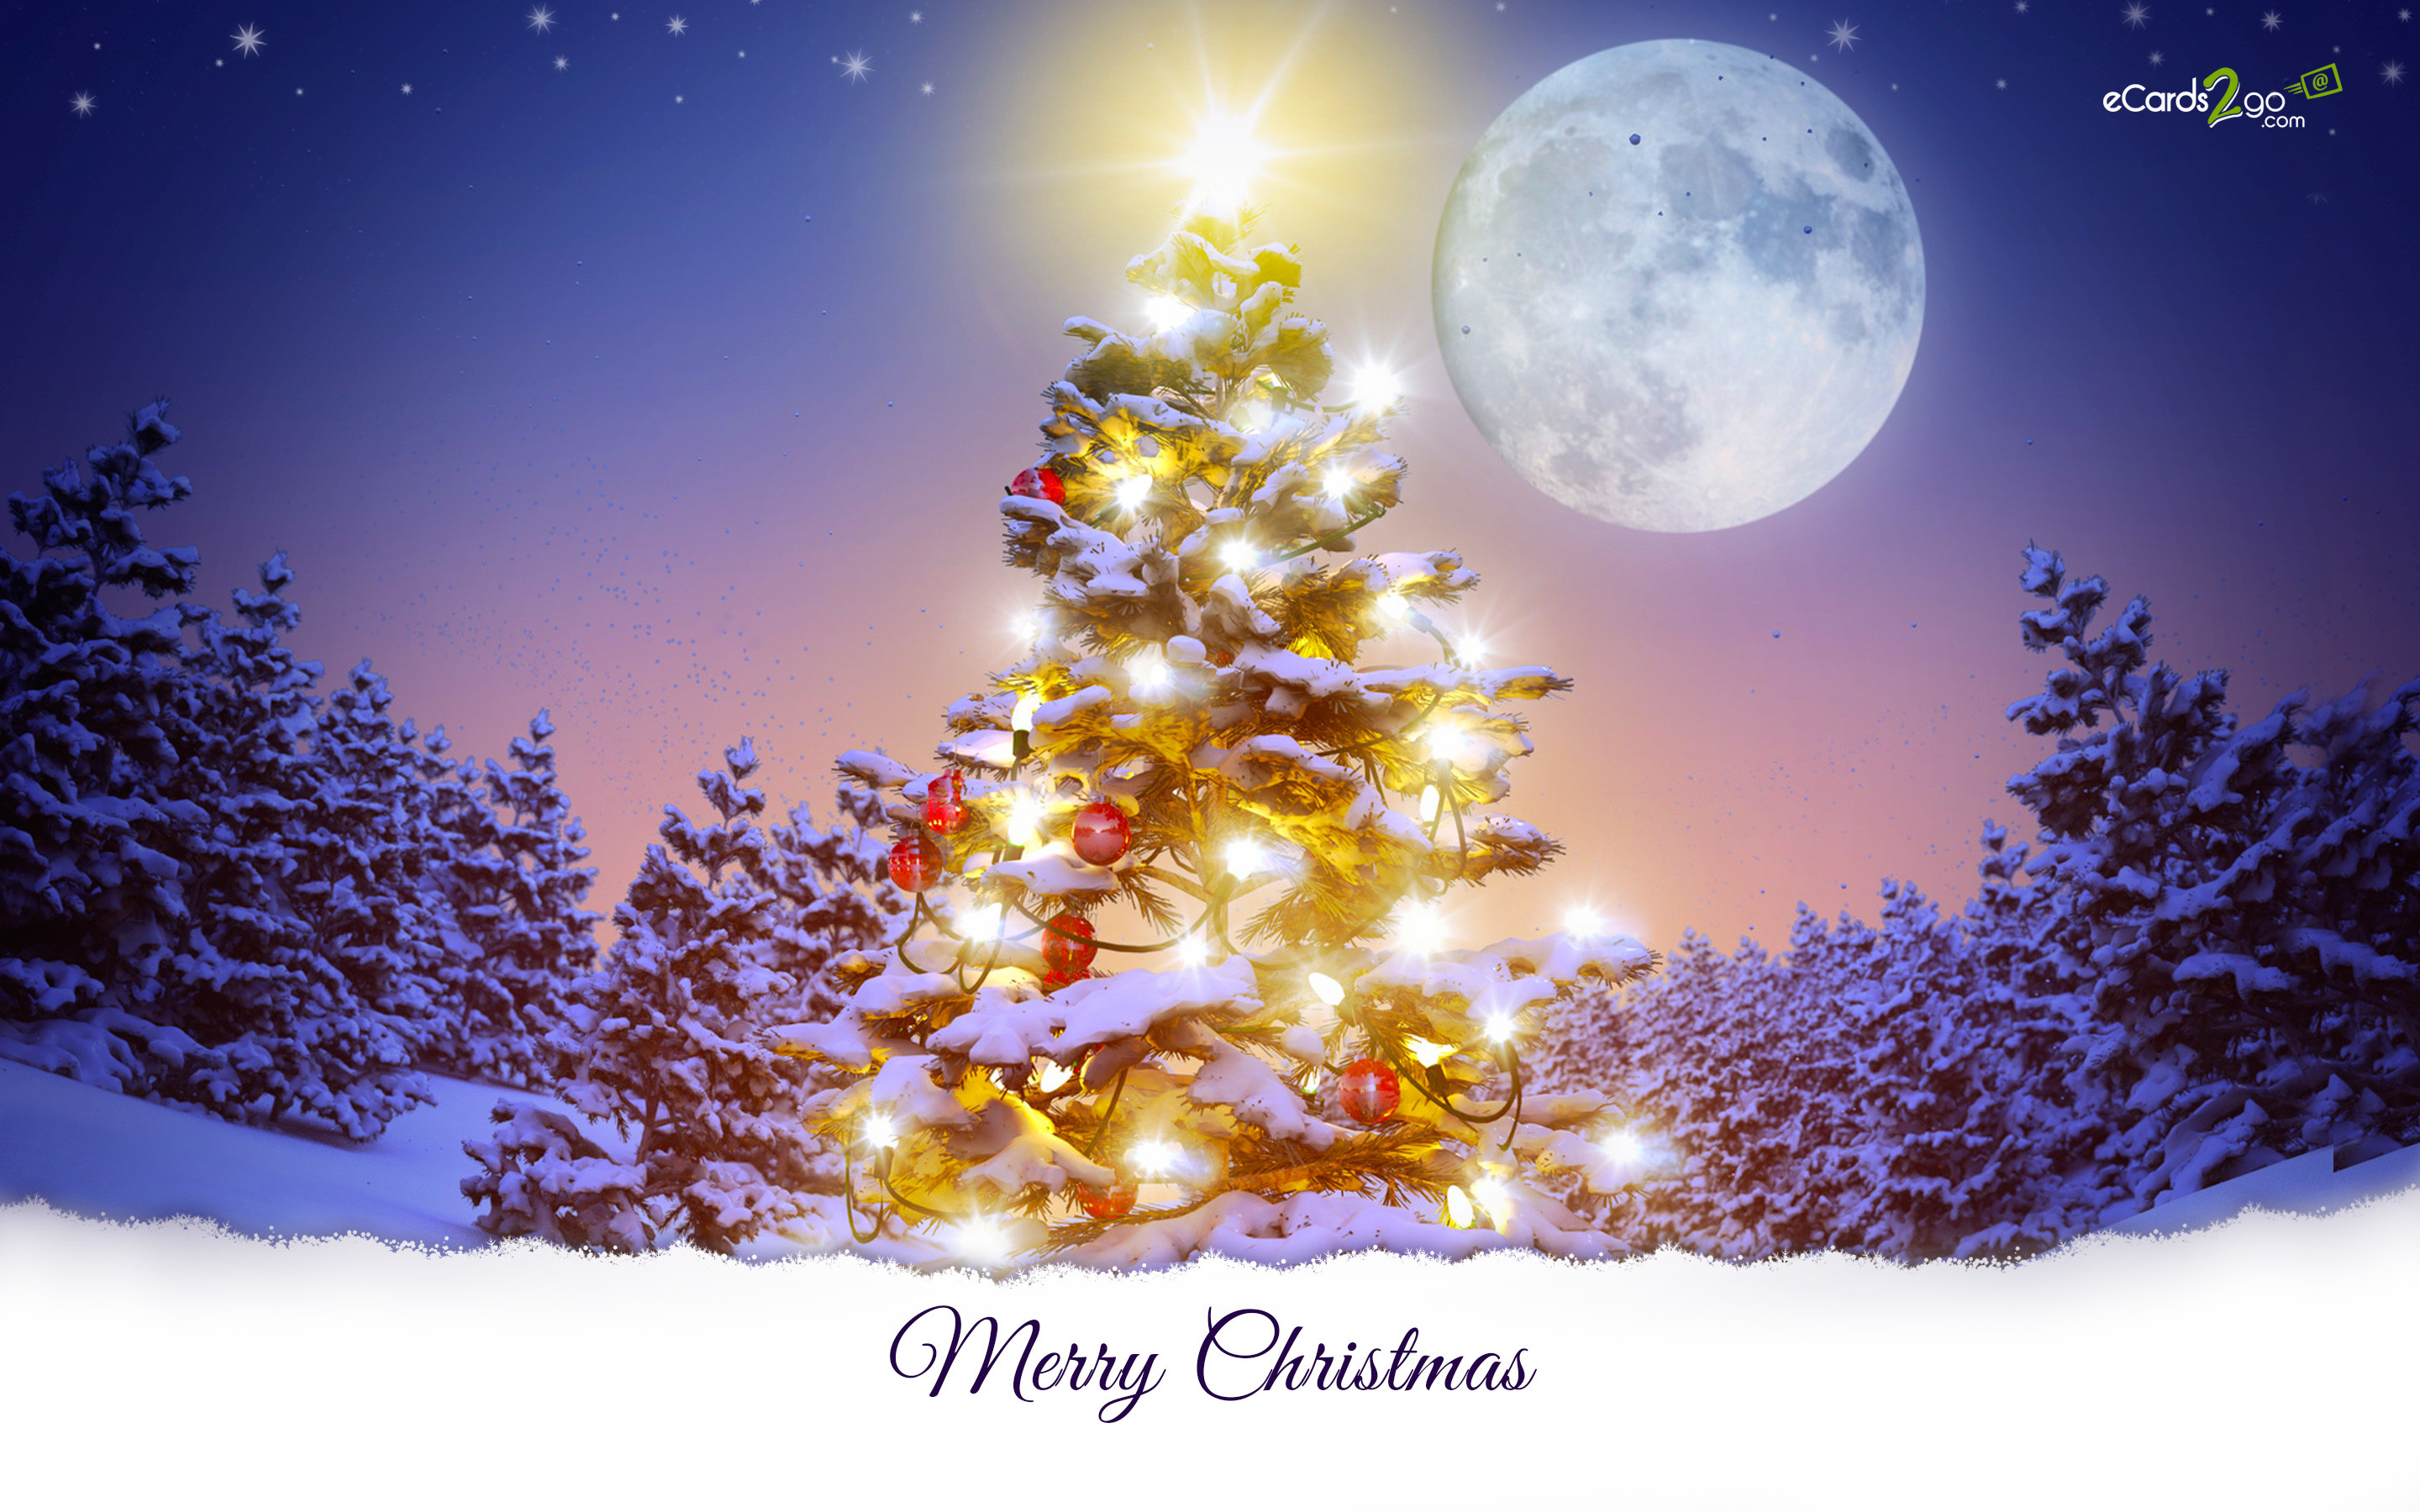 Holiday desktop backgrounds 66 images - Free christmas images for desktop wallpaper ...